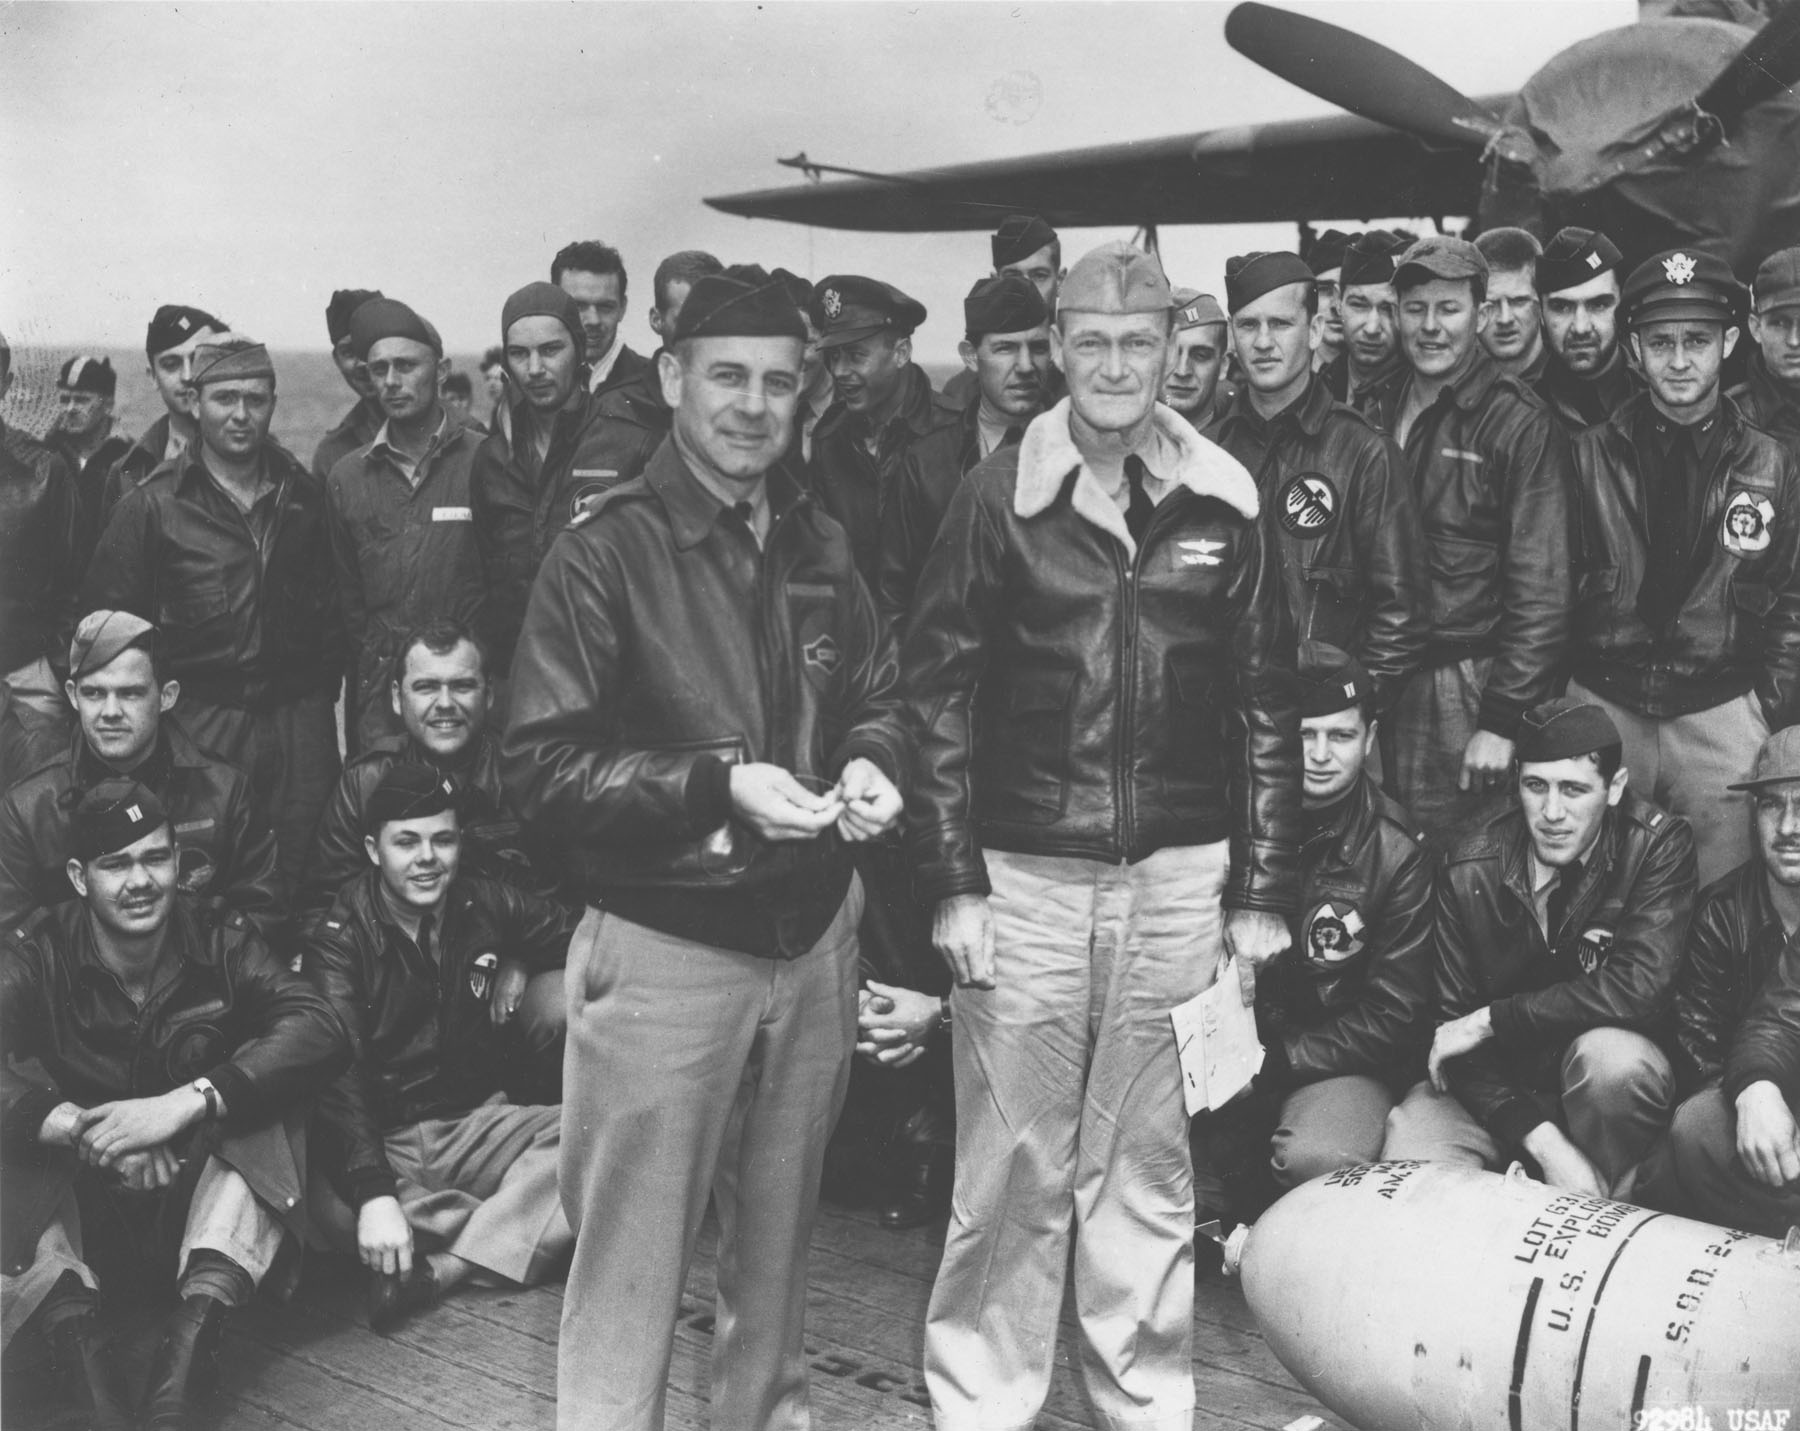 Doolittle Raid, April 1942 - Lieutenant Colonel James H. Doolittle und Captain Marc A. Mitscher mit der US Air Force Freiwilligengruppe